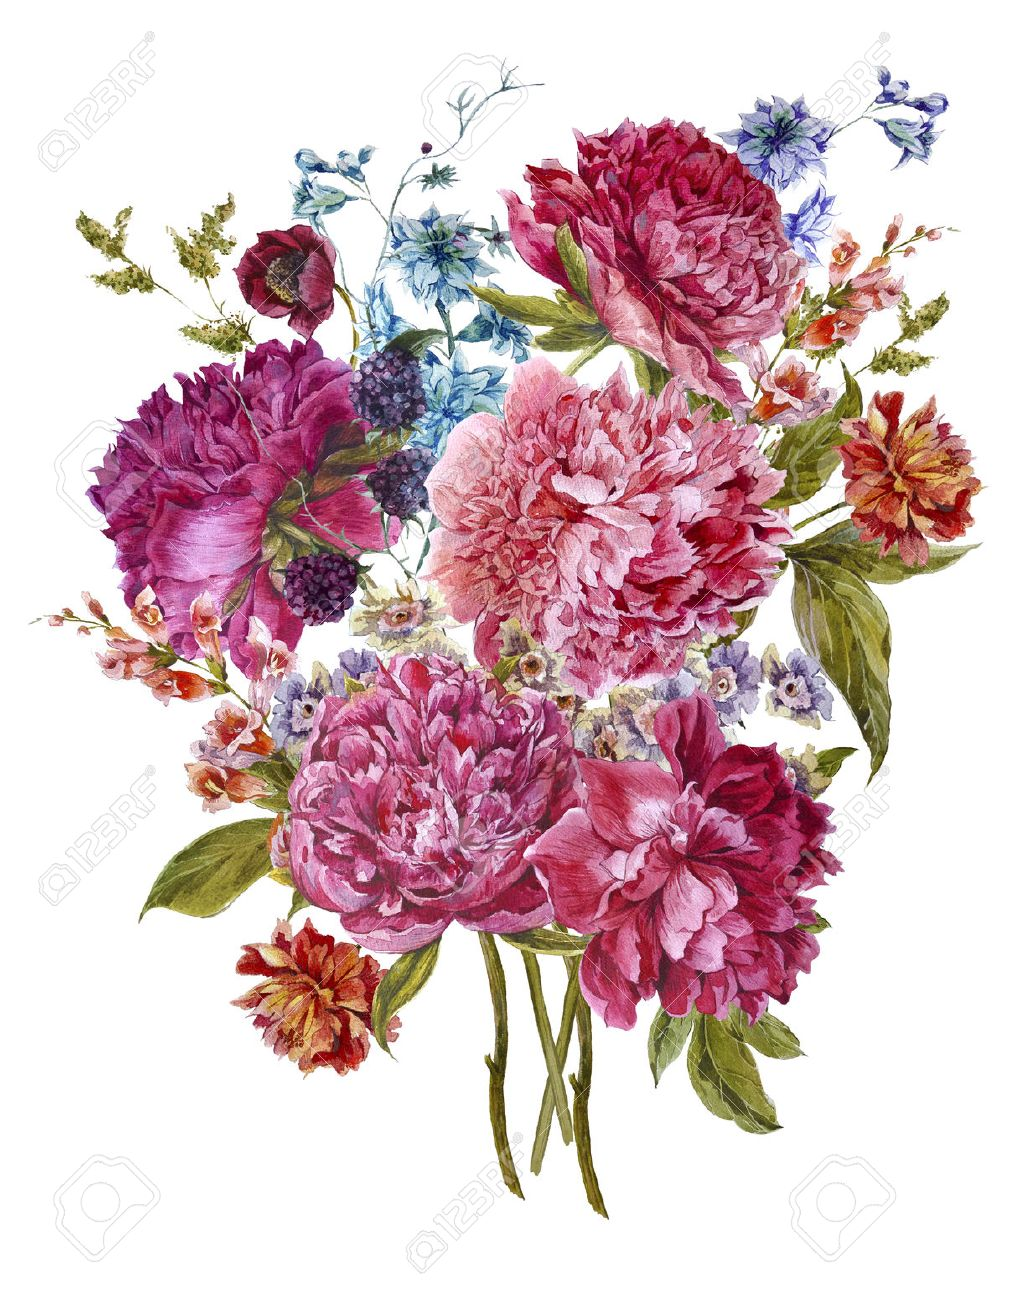 Gentle summer floral bouquet with burgundy peonies hyacinths gentle summer floral bouquet with burgundy peonies hyacinths blackberry and wild flowers in vintage dhlflorist Choice Image